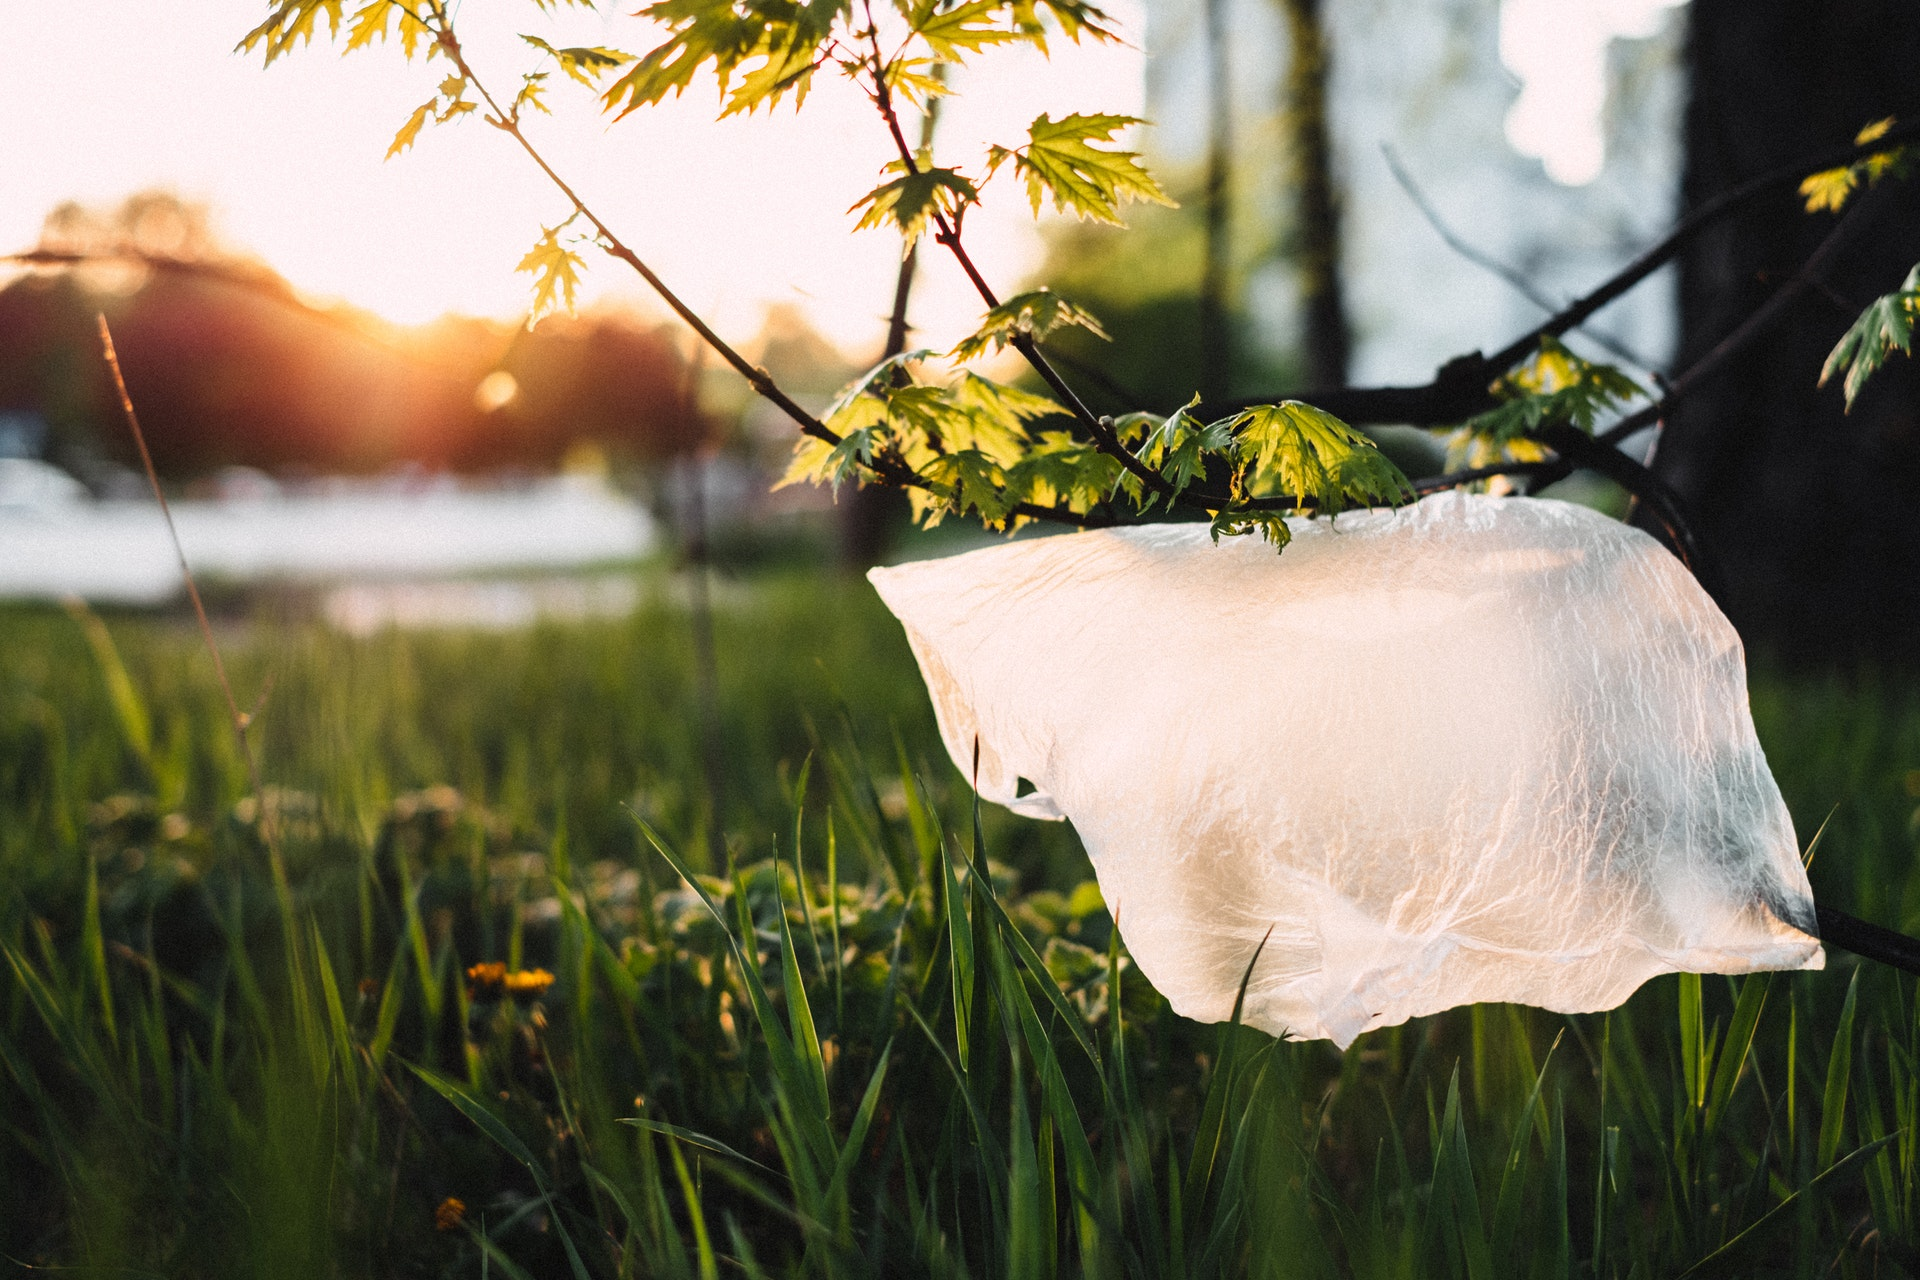 They began to use 85% less plastic bags in Greece